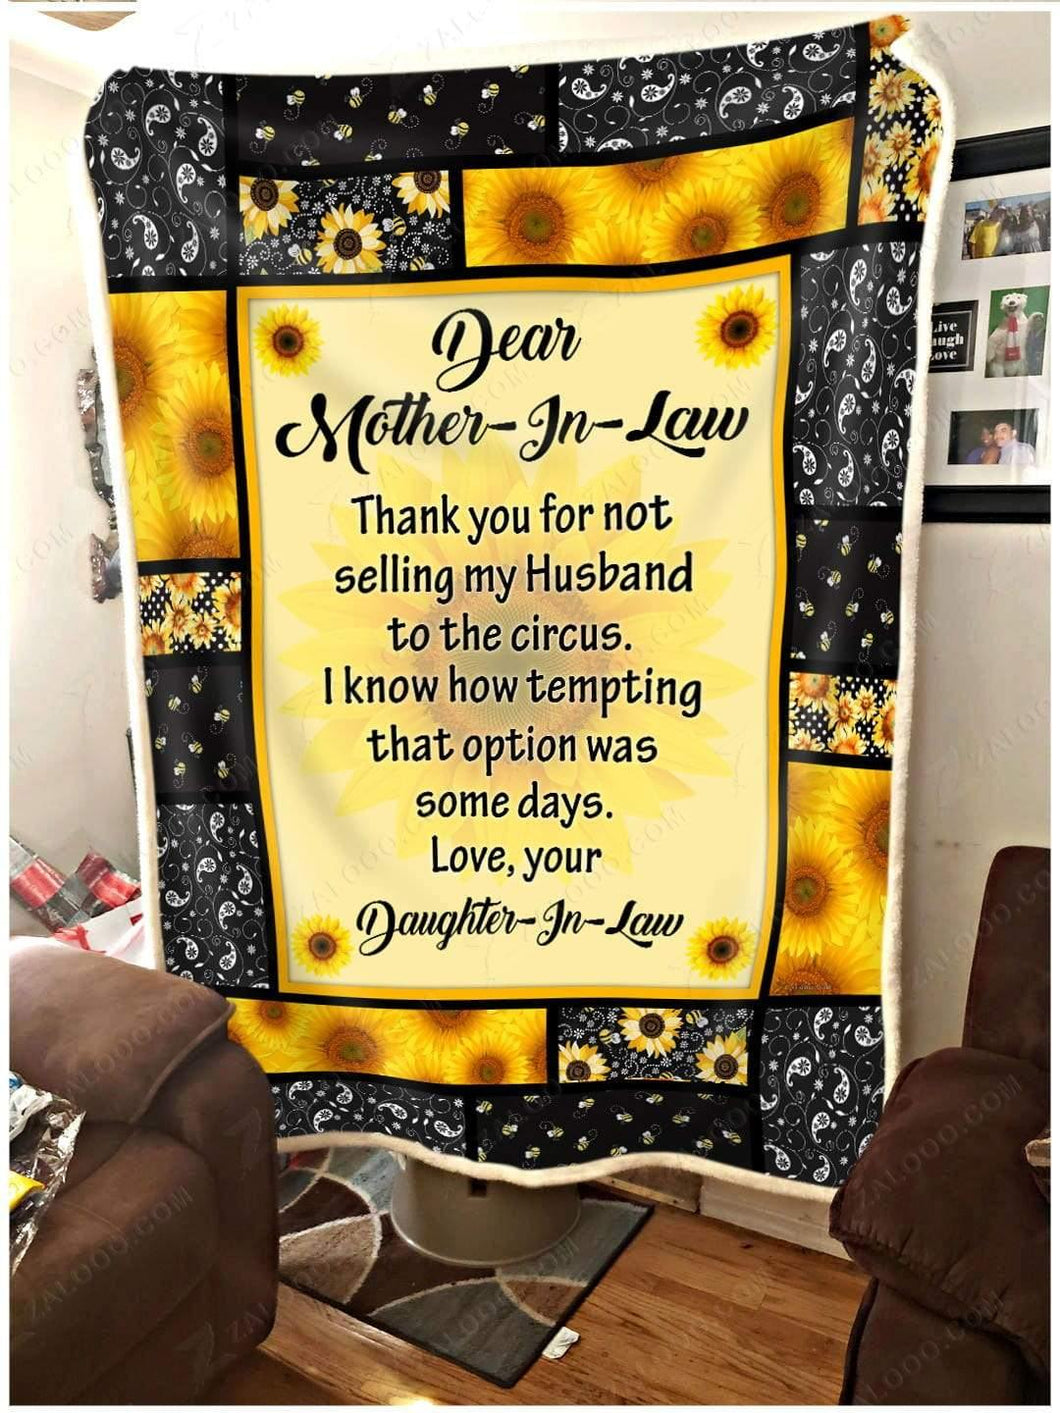 Blanket Dear Motherinlaw I know how tempting